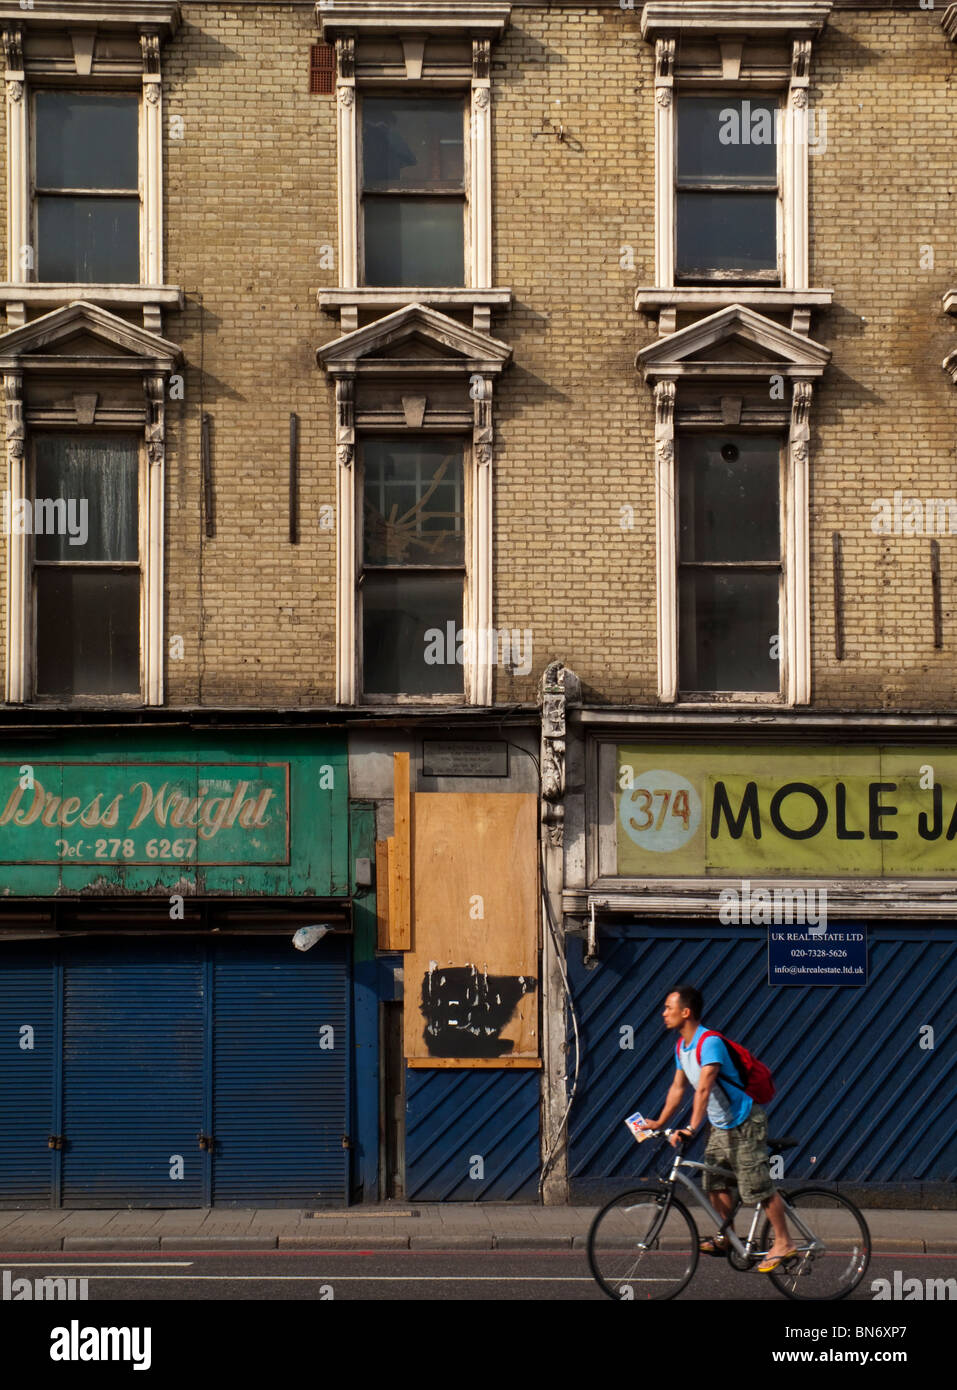 Run down and boarded up shops and offices in King's Cross north London England UK showing inner city urban decay - Stock Image